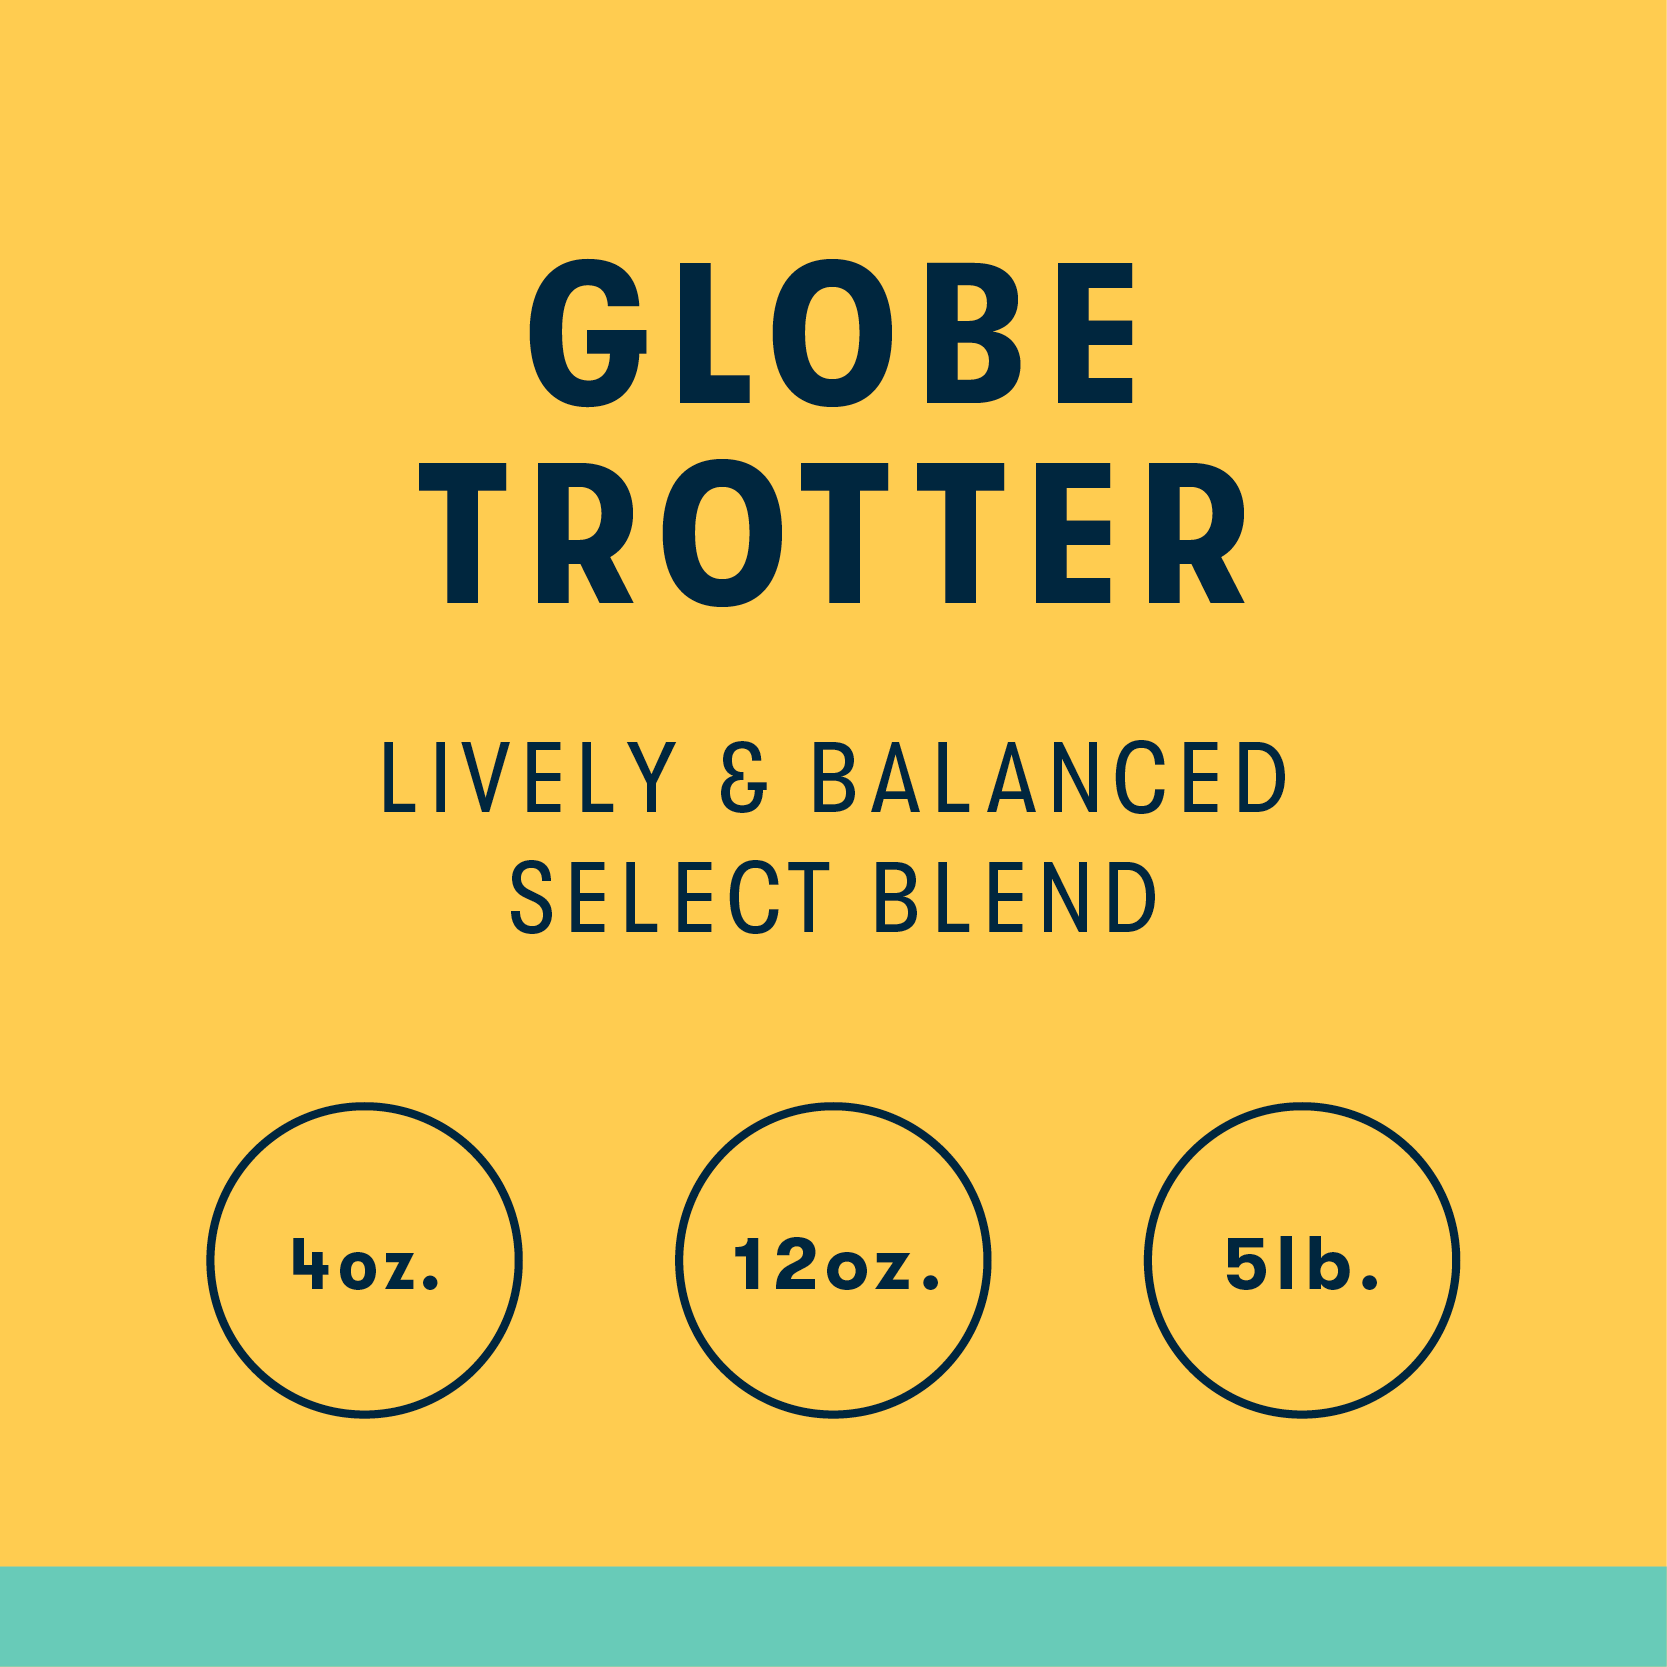 Globe Trotter Blend - RIVET Coffee